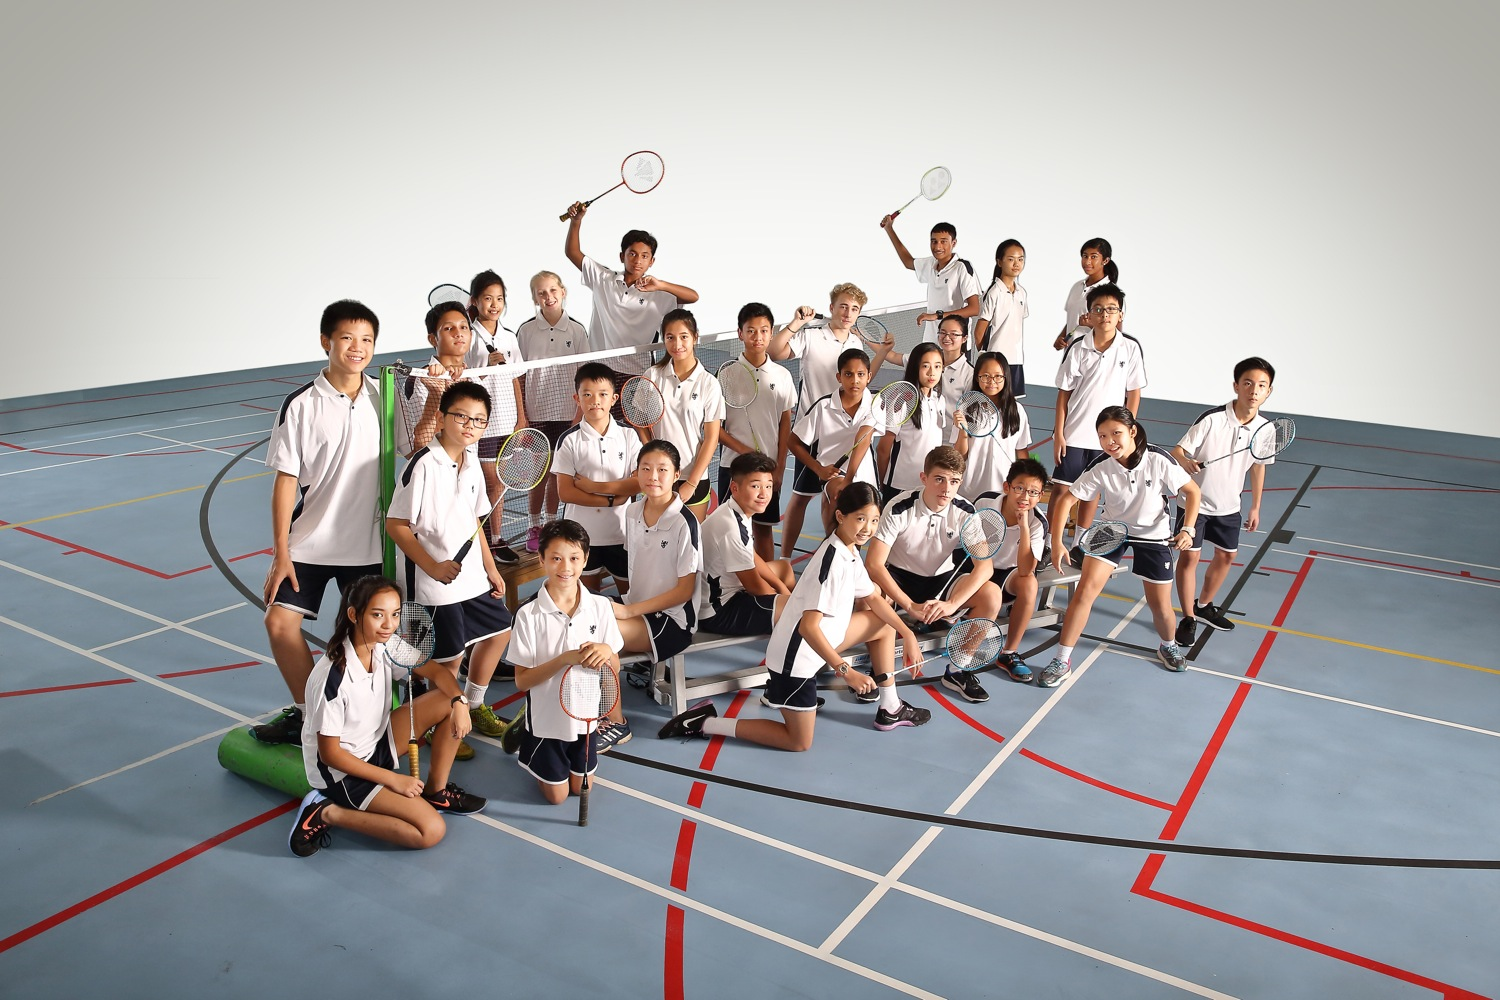 Badminton group photography of BSKL